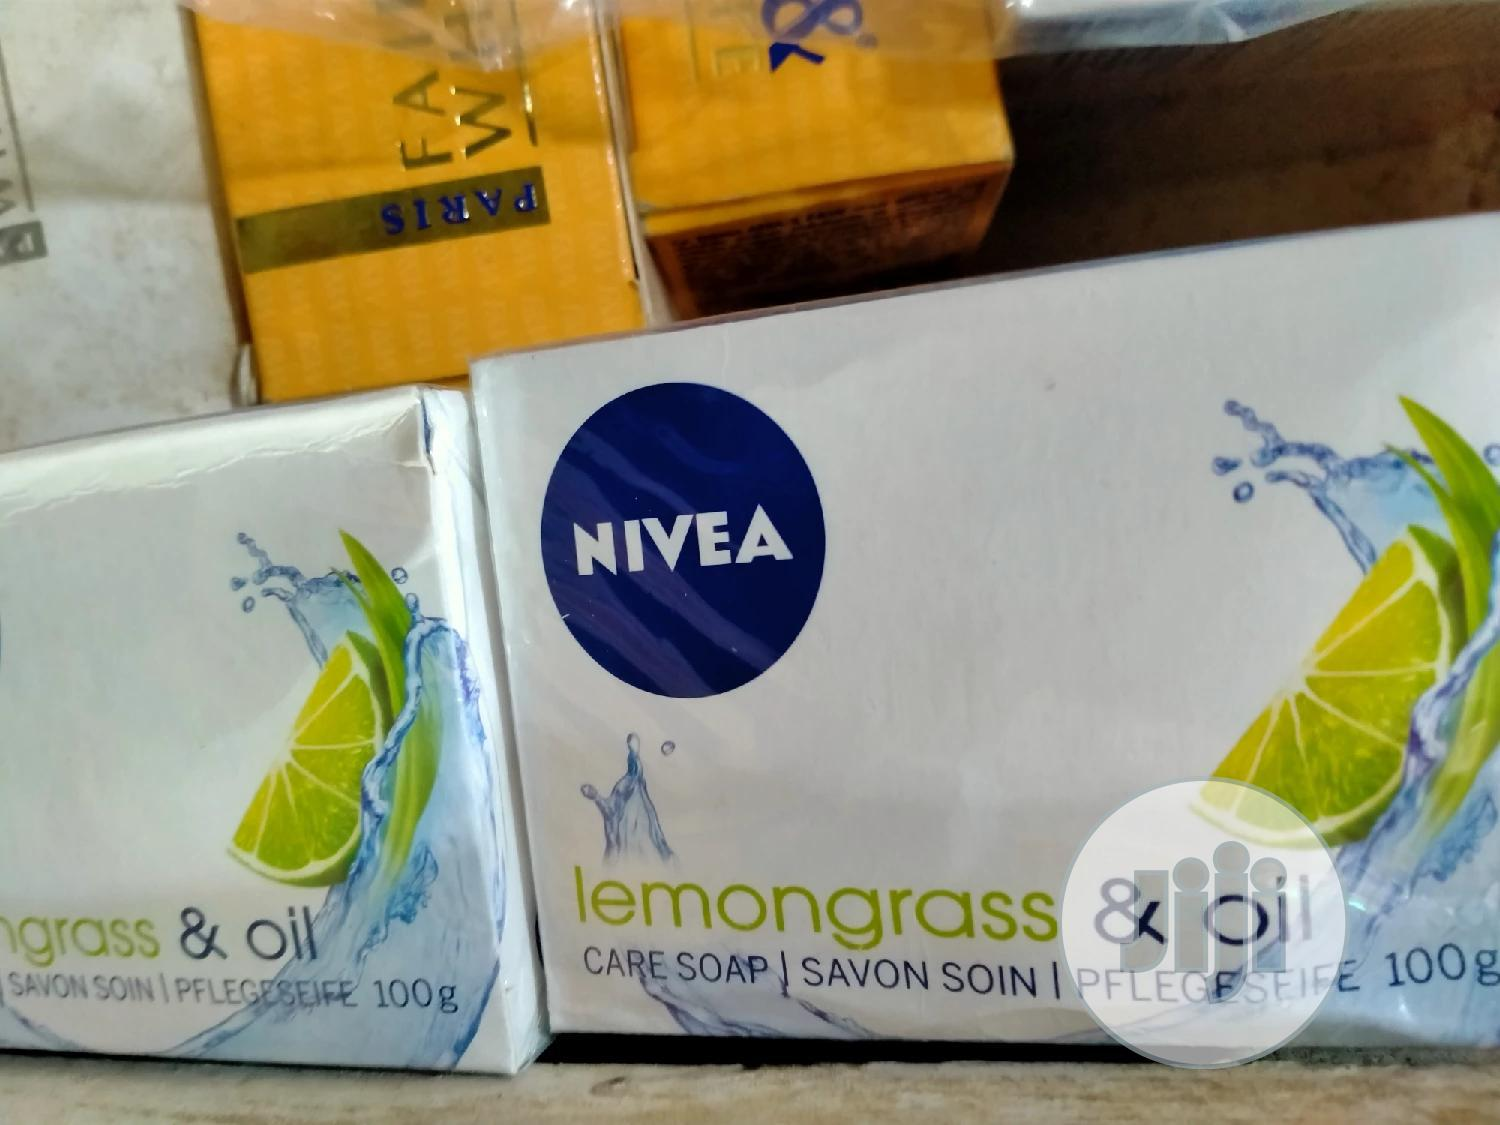 Nivea Lemongrass & Oil Soap (6in1pack) | Bath & Body for sale in Amuwo-Odofin, Lagos State, Nigeria